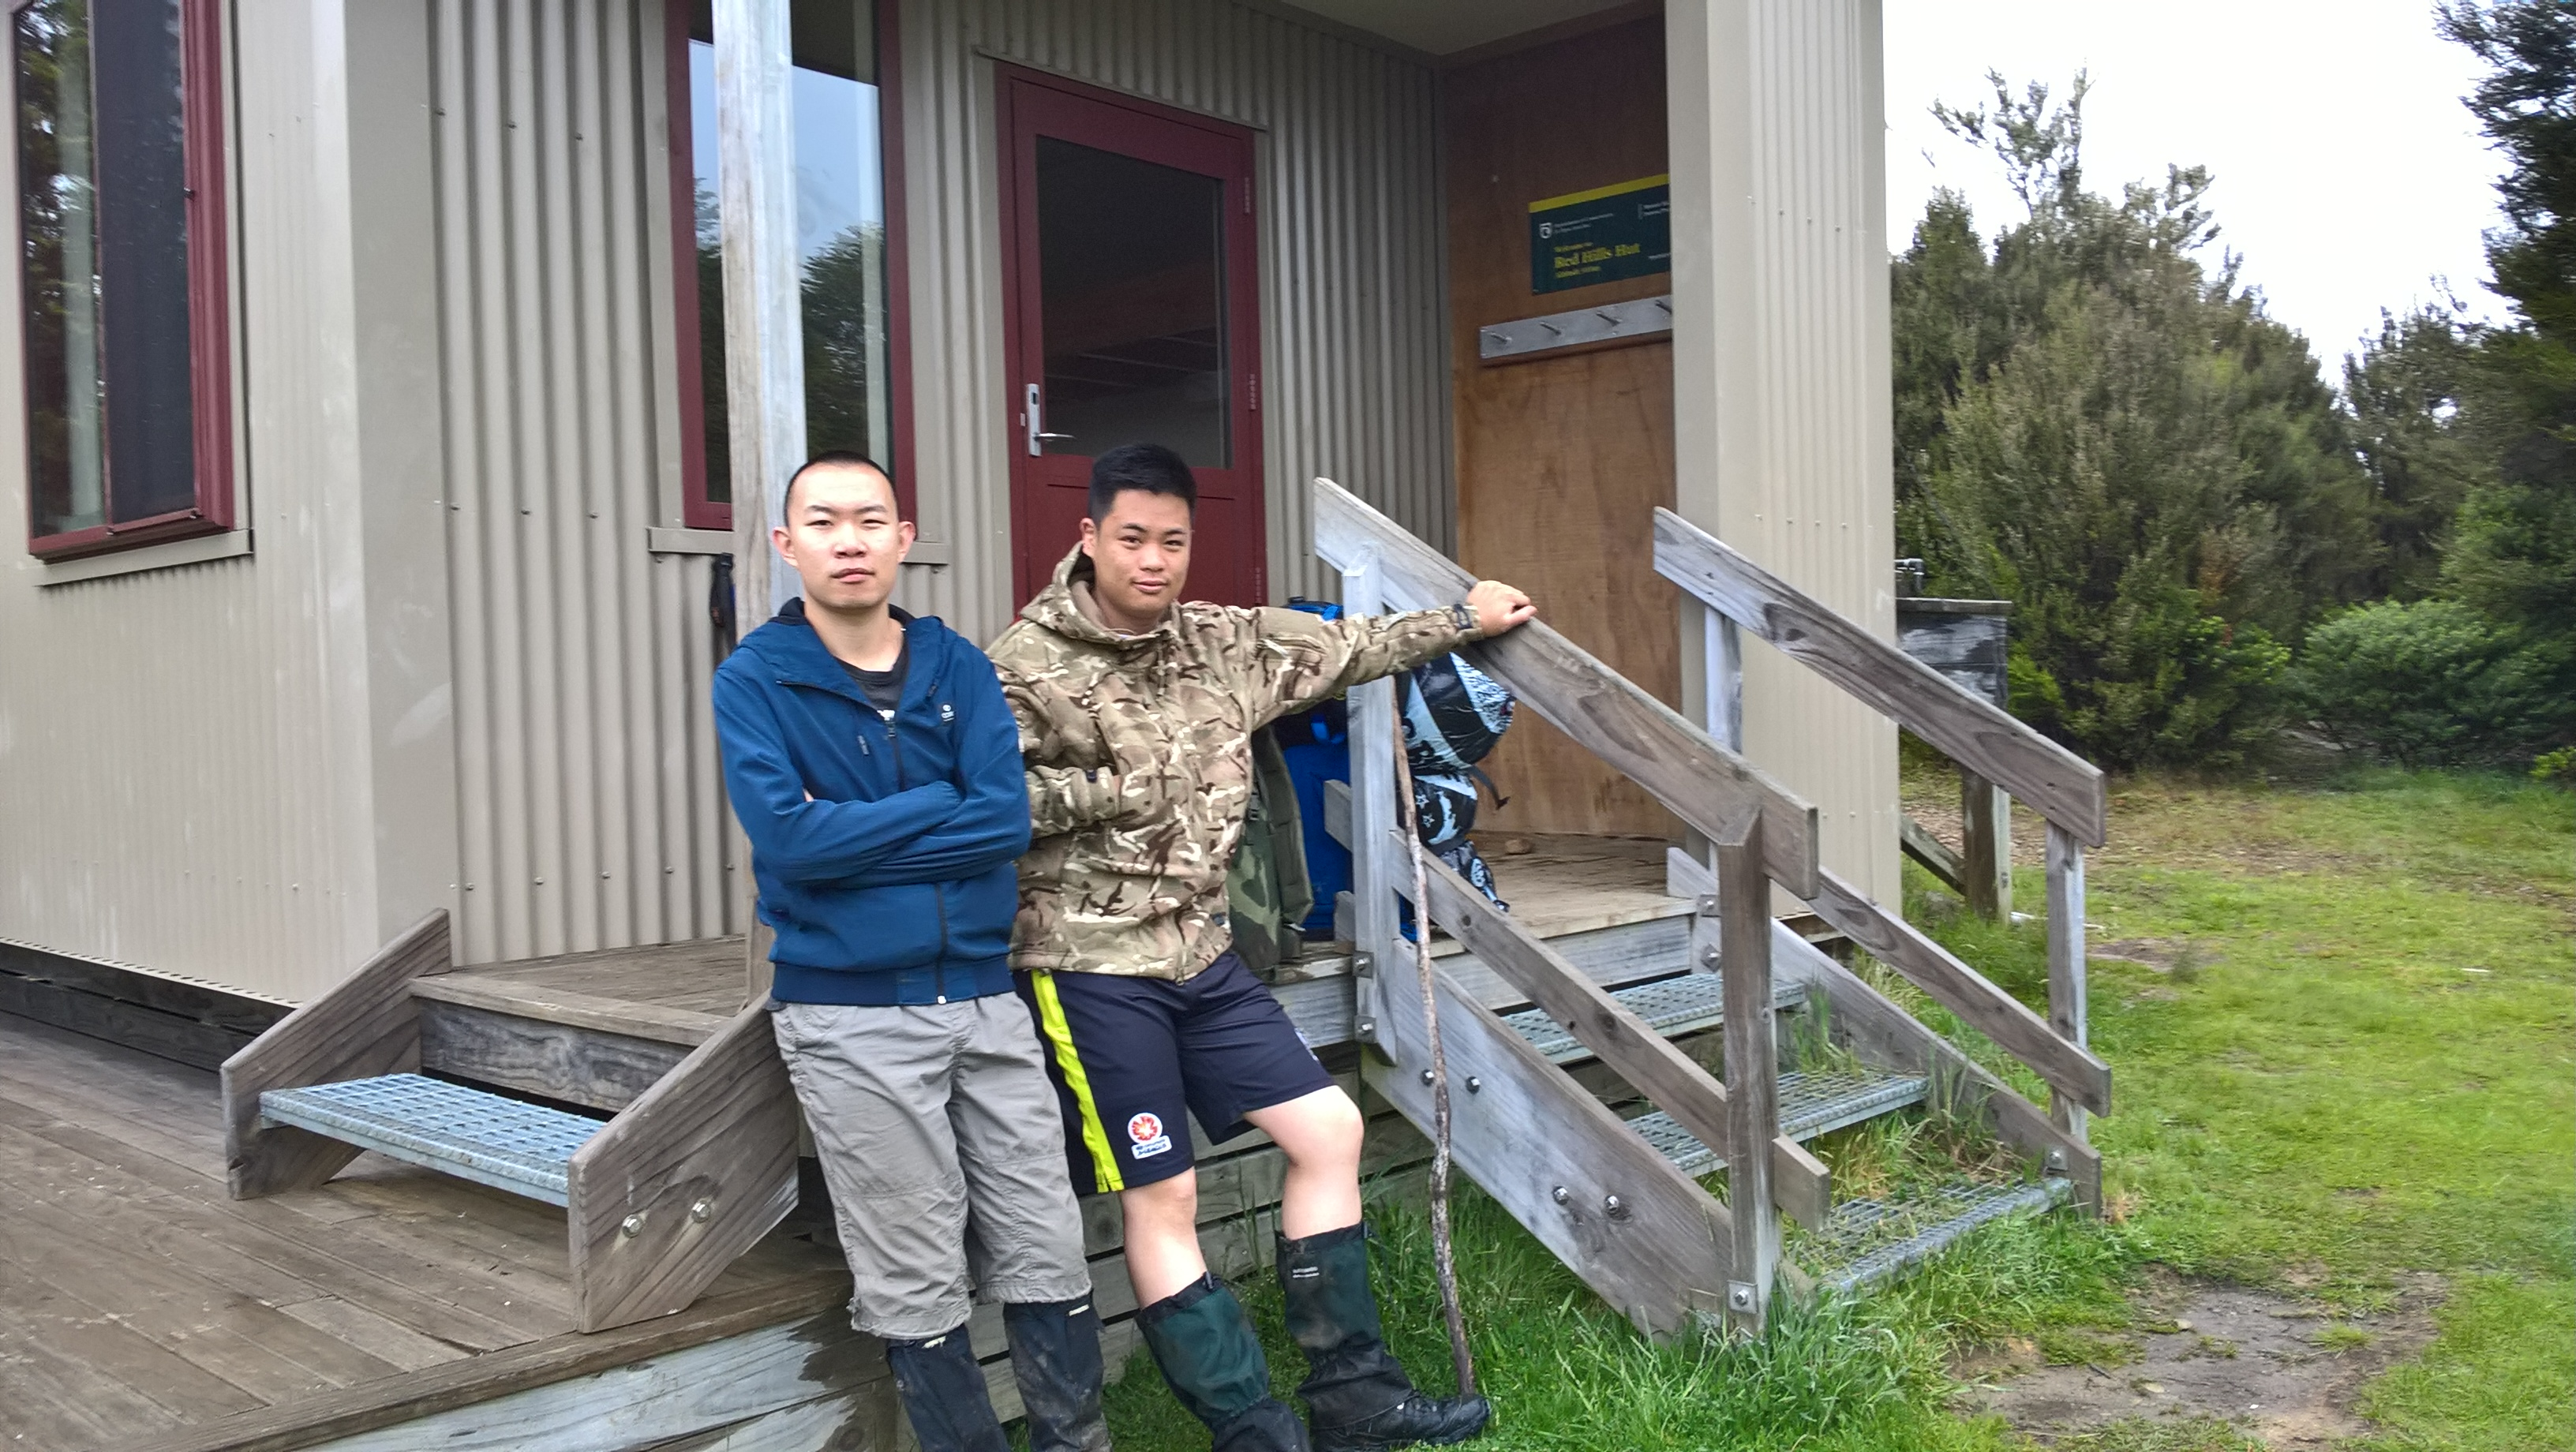 Weixuan and Justin at a hut in the Richmond Range. Dec 2018. Photo by Heidi Meudt @ Te Papa.